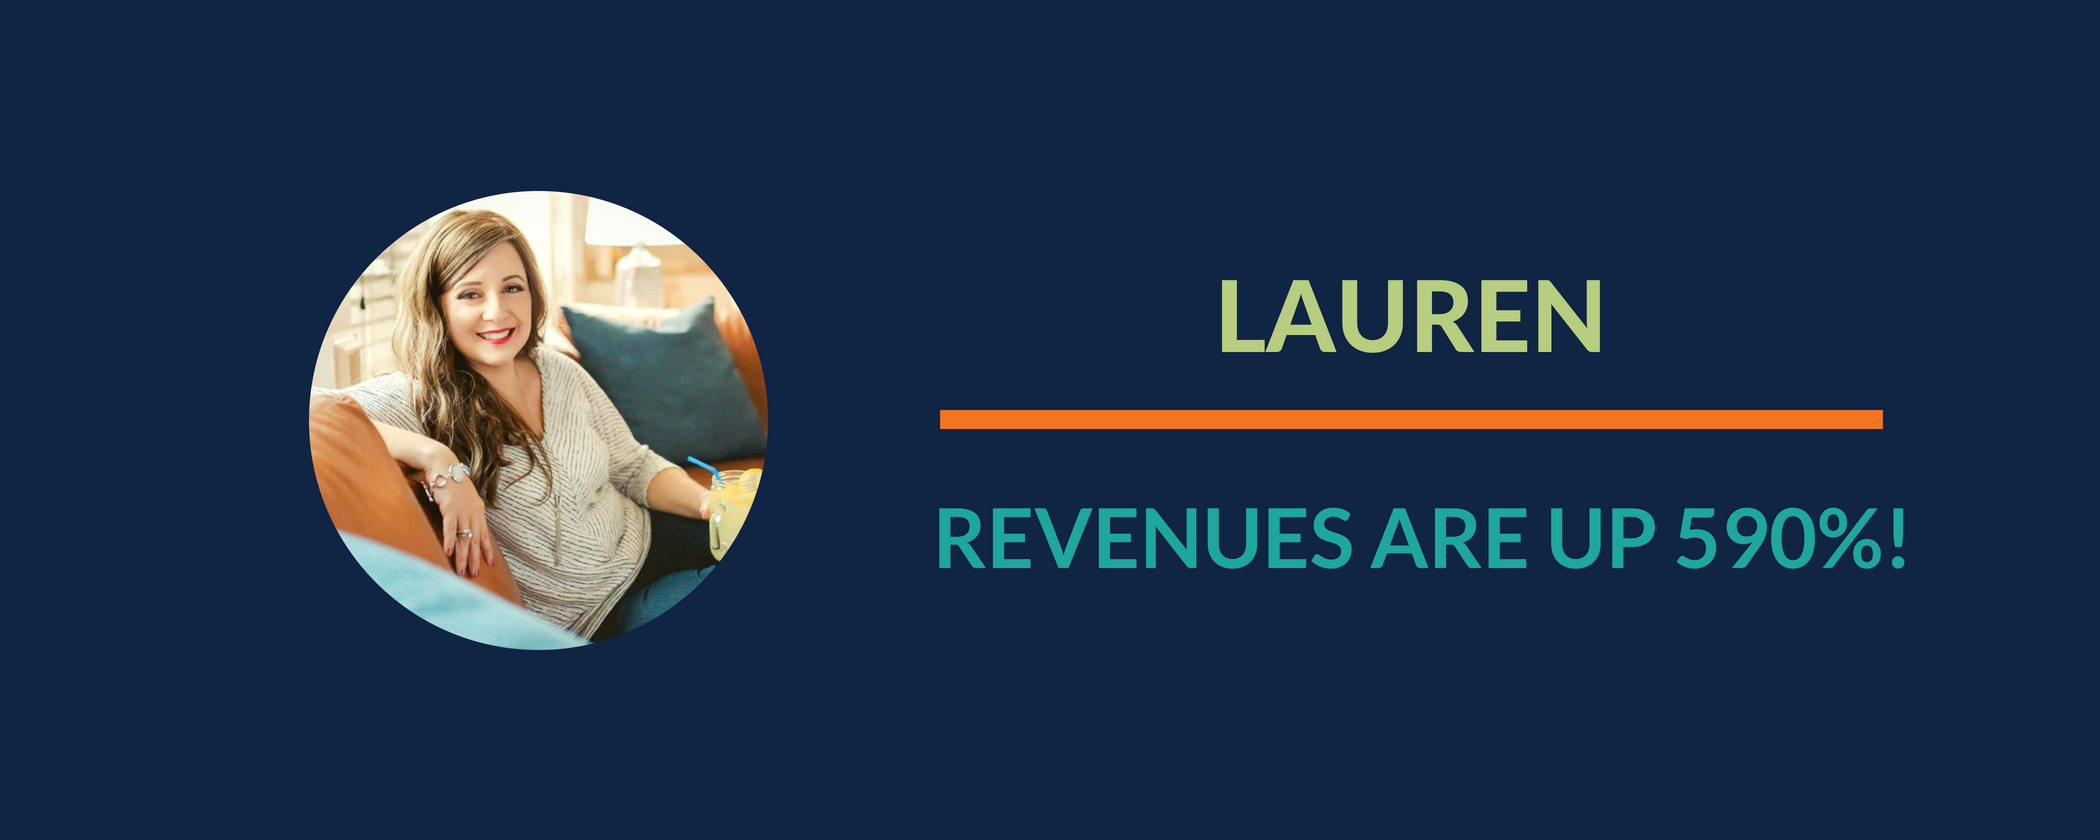 Success Story: Lauren's throwback success from when she first started her online business journey!